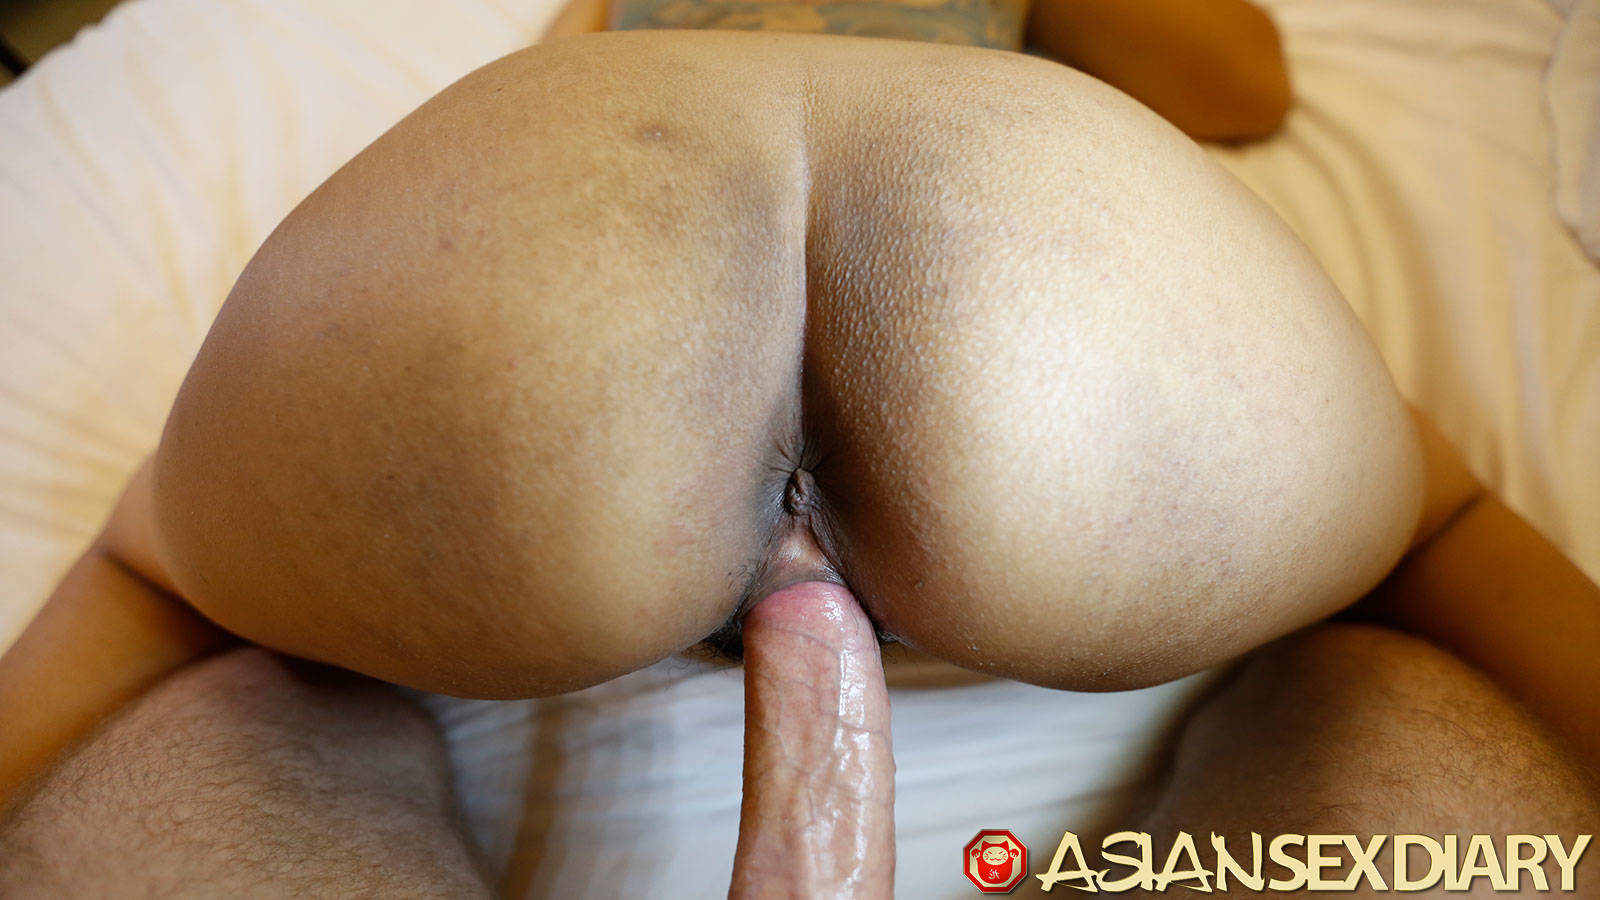 squirting into pussy